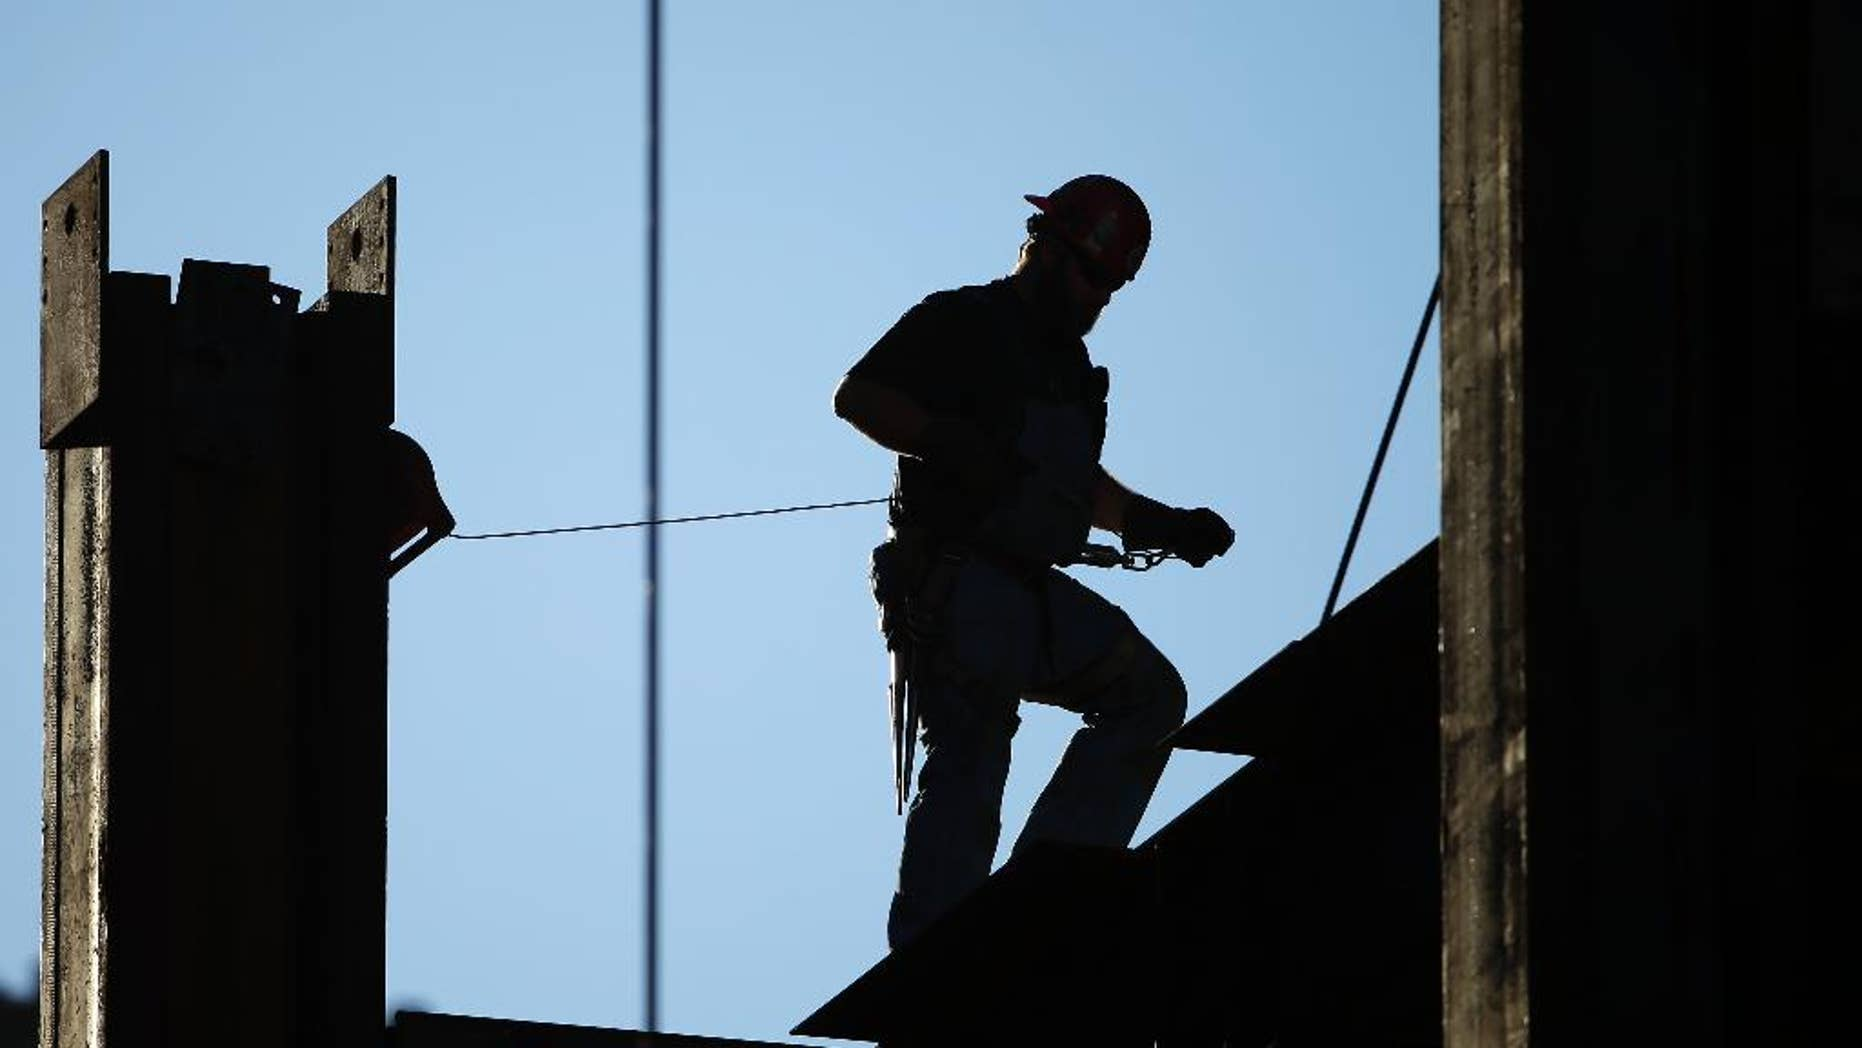 FILE - In this Sept. 15, 2015, file photo, an iron worker works on the new Comcast Innovation and Technology Center under construction, in Philadelphia. The Commerce Department reports on U.S. construction spending in November, on Monday, Jan. 4, 2016. (AP Photo/Matt Rourke, File)